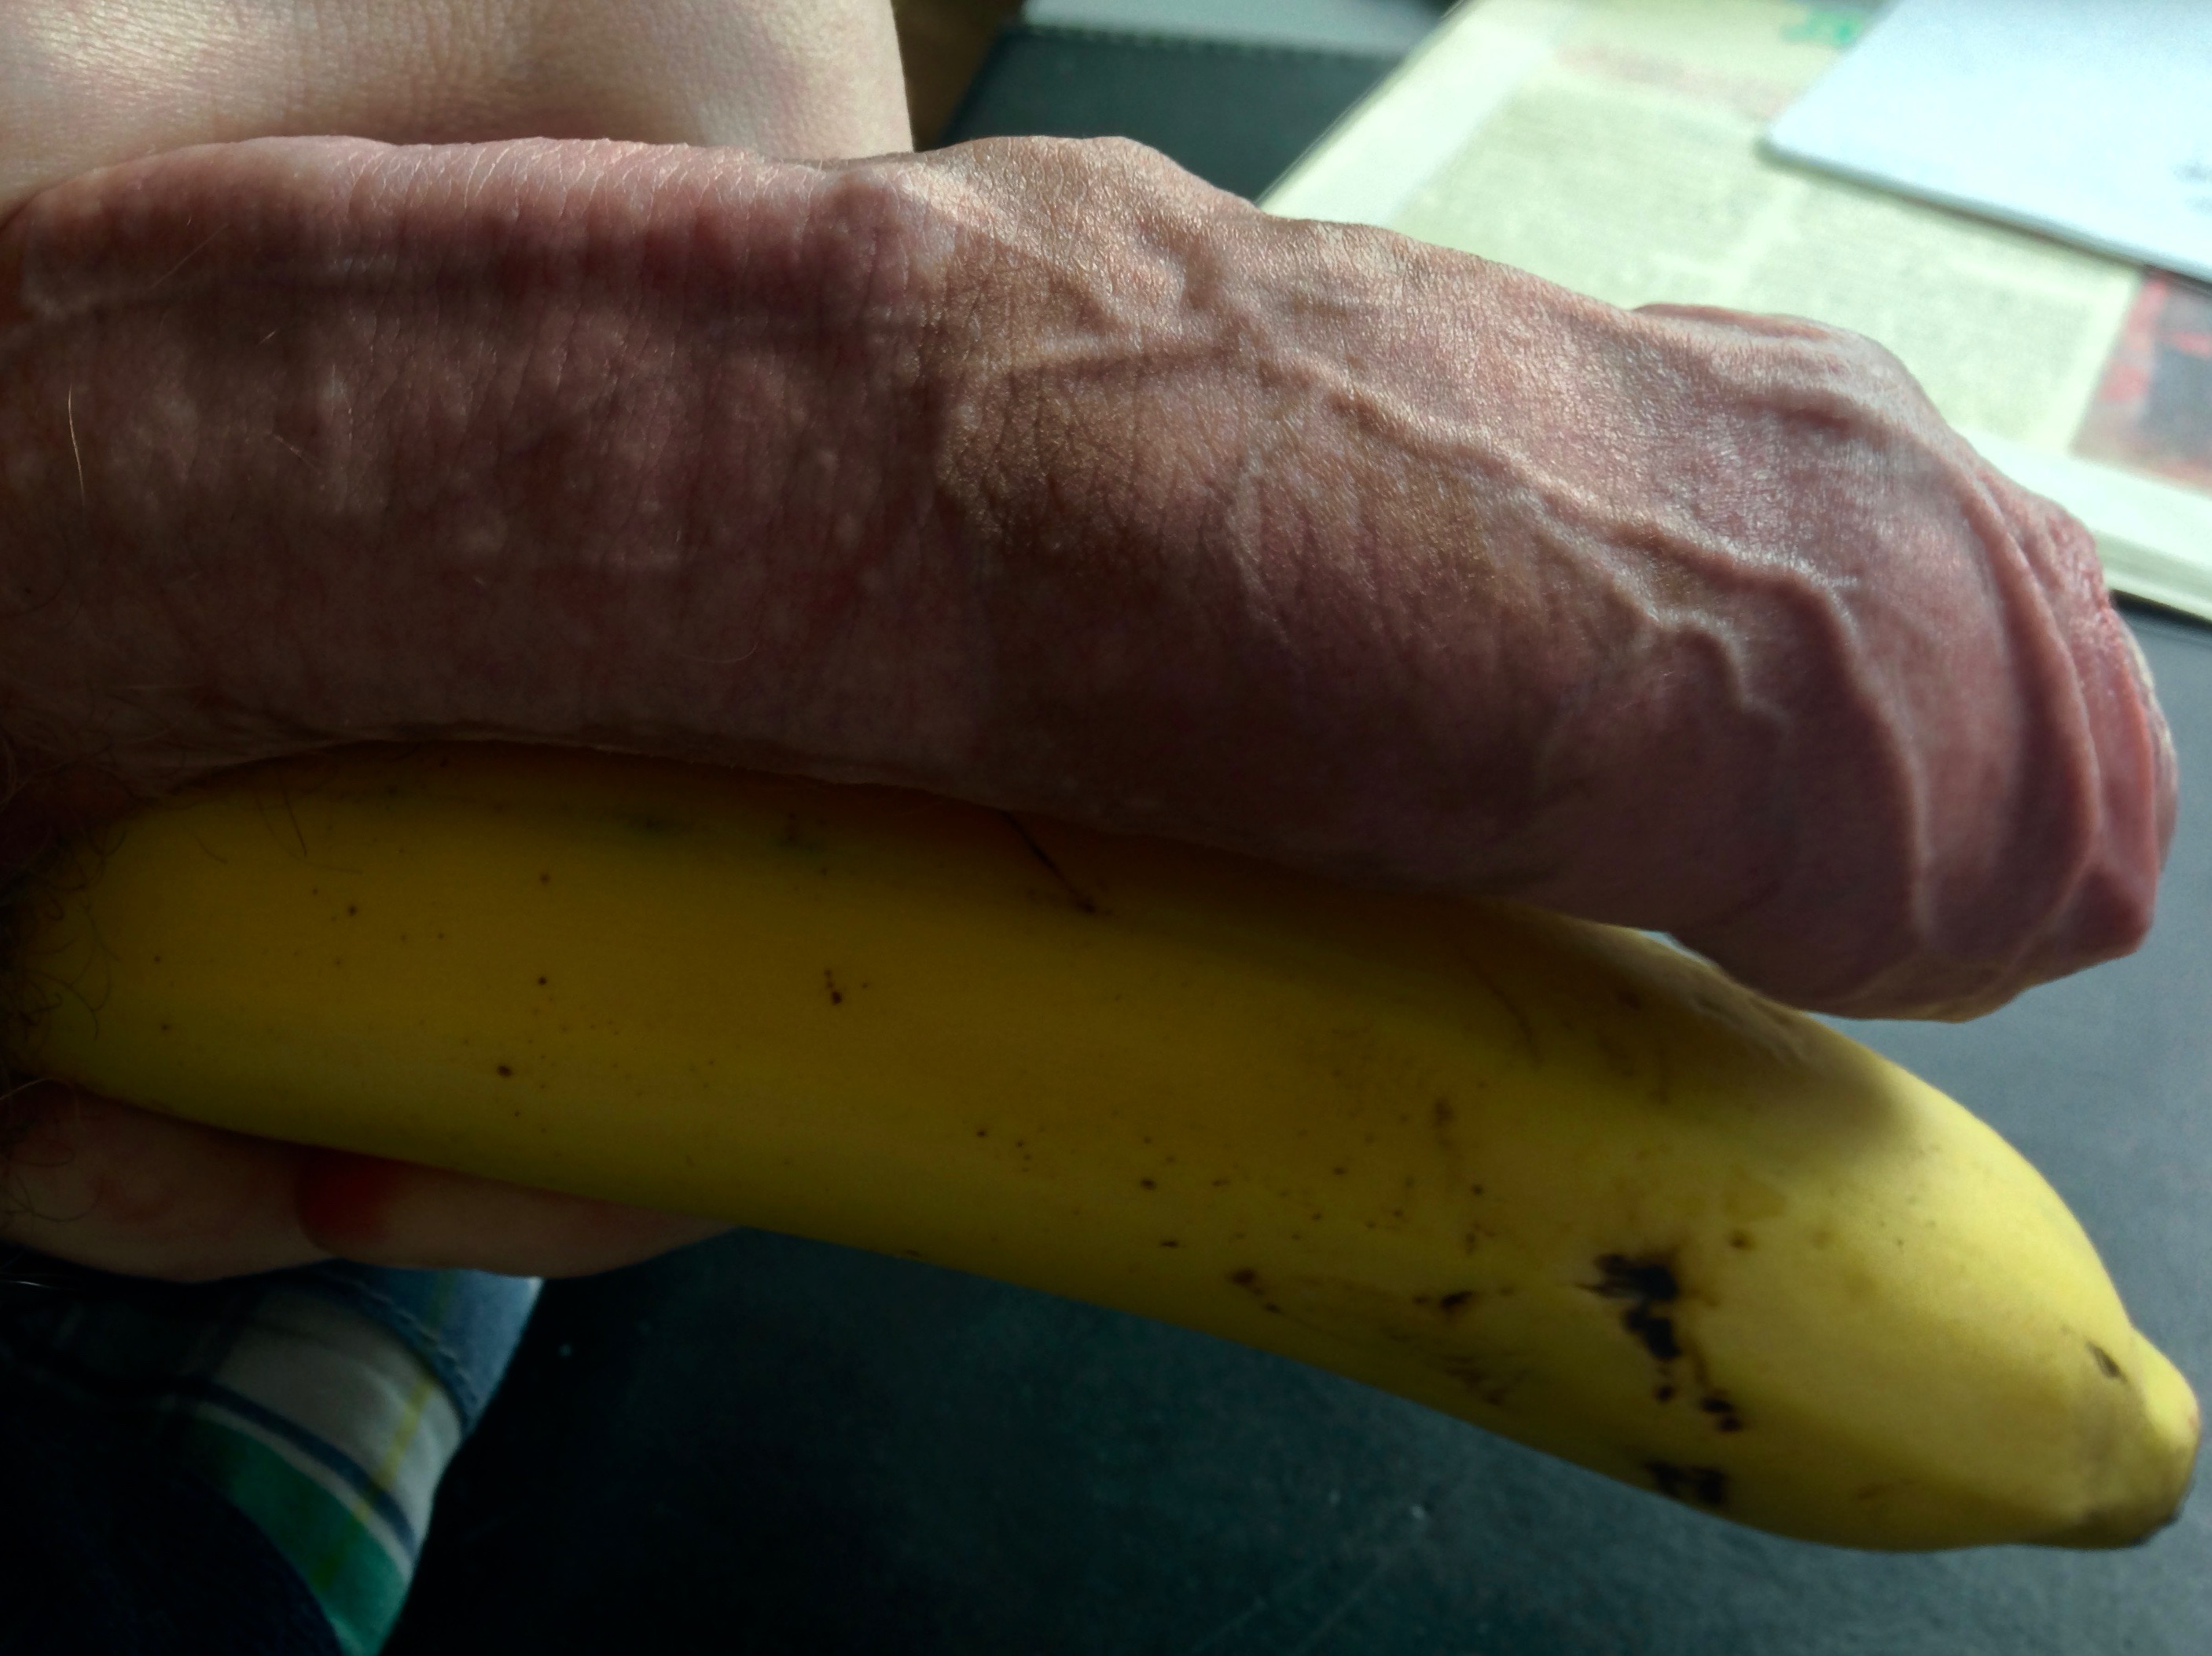 Another very interesting foreskin